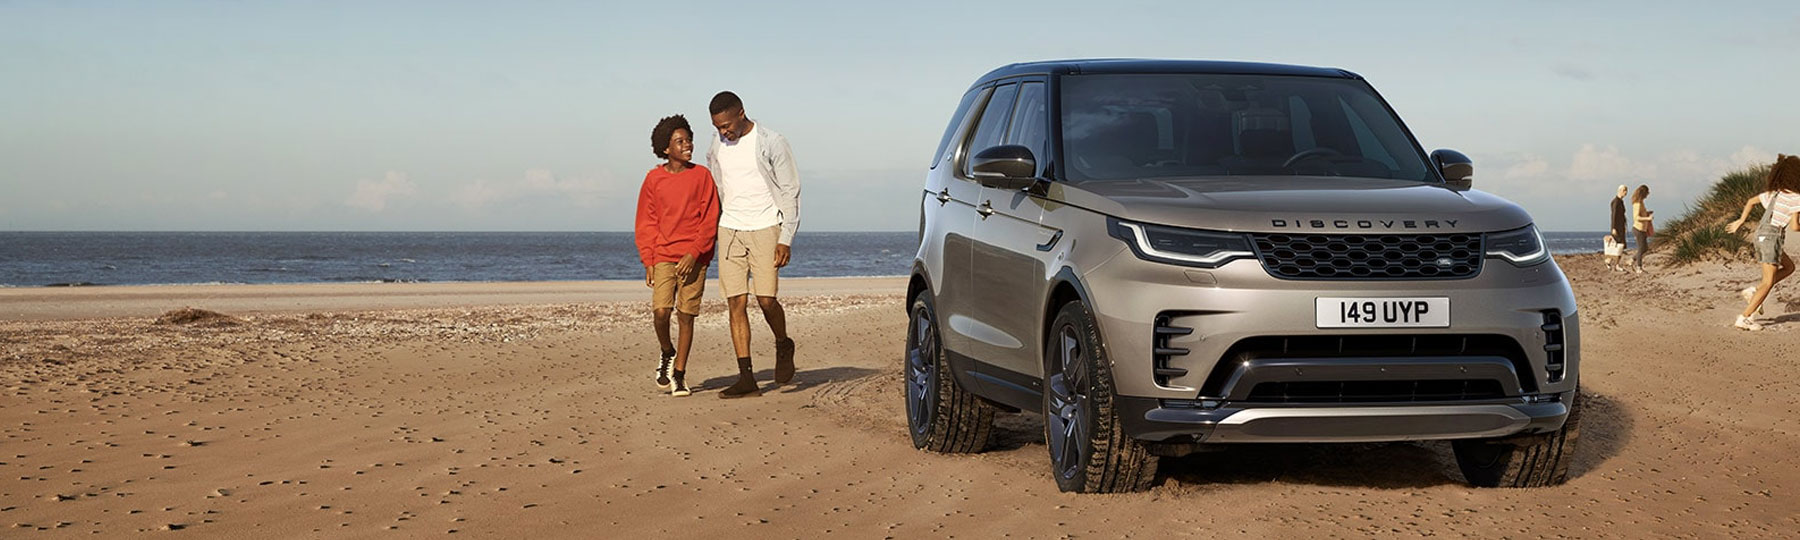 New Land Rover Discovery Business Offer